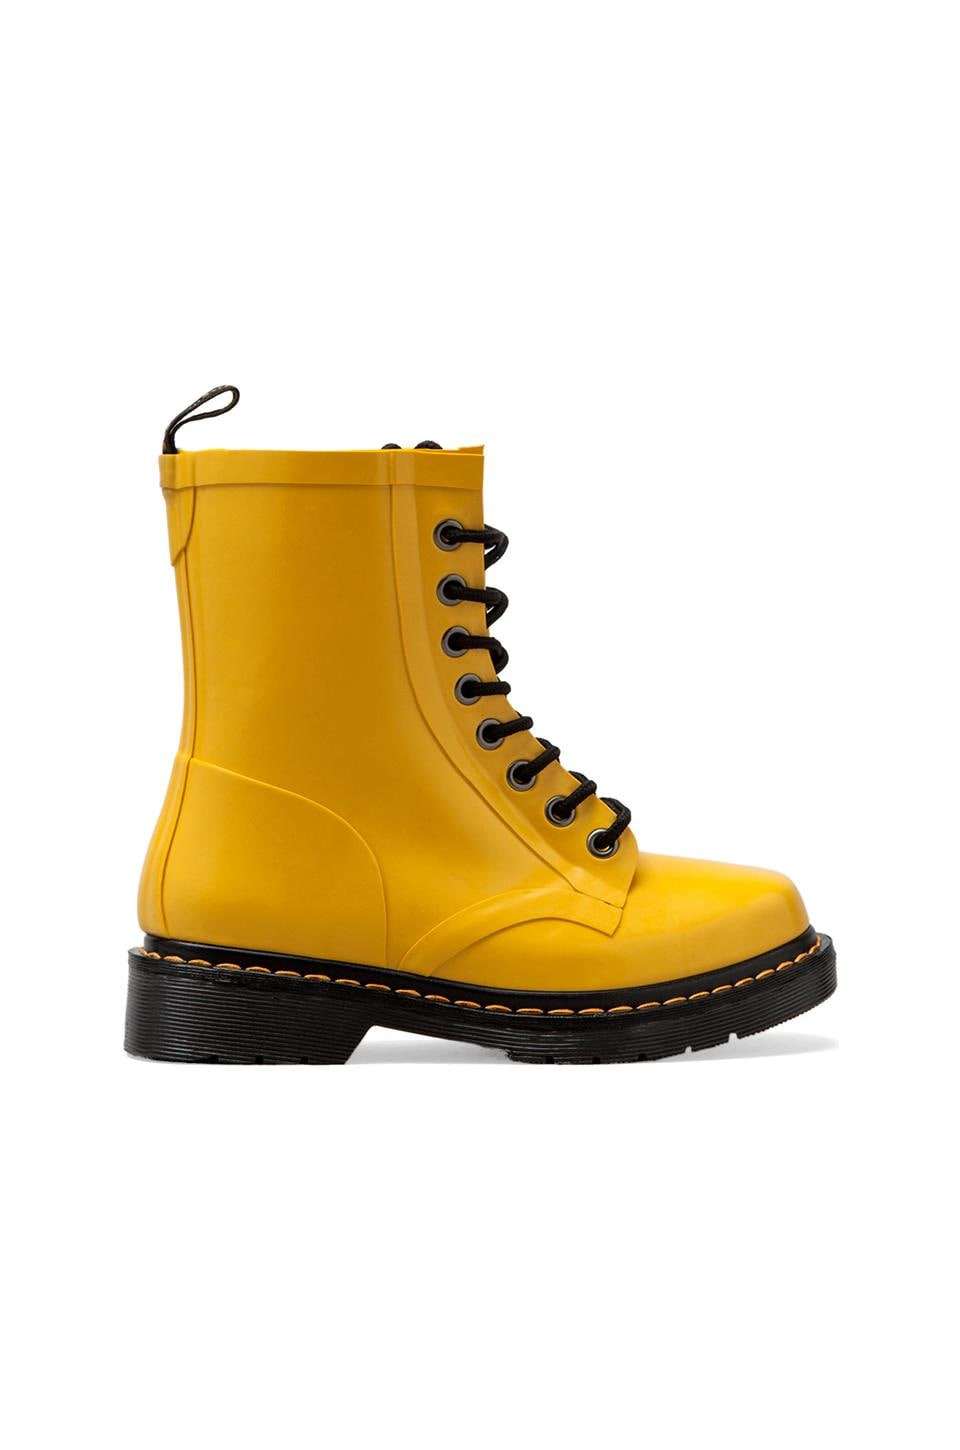 Dr. Martens Drench 8-Eye Rain Boot in Yellow Patent